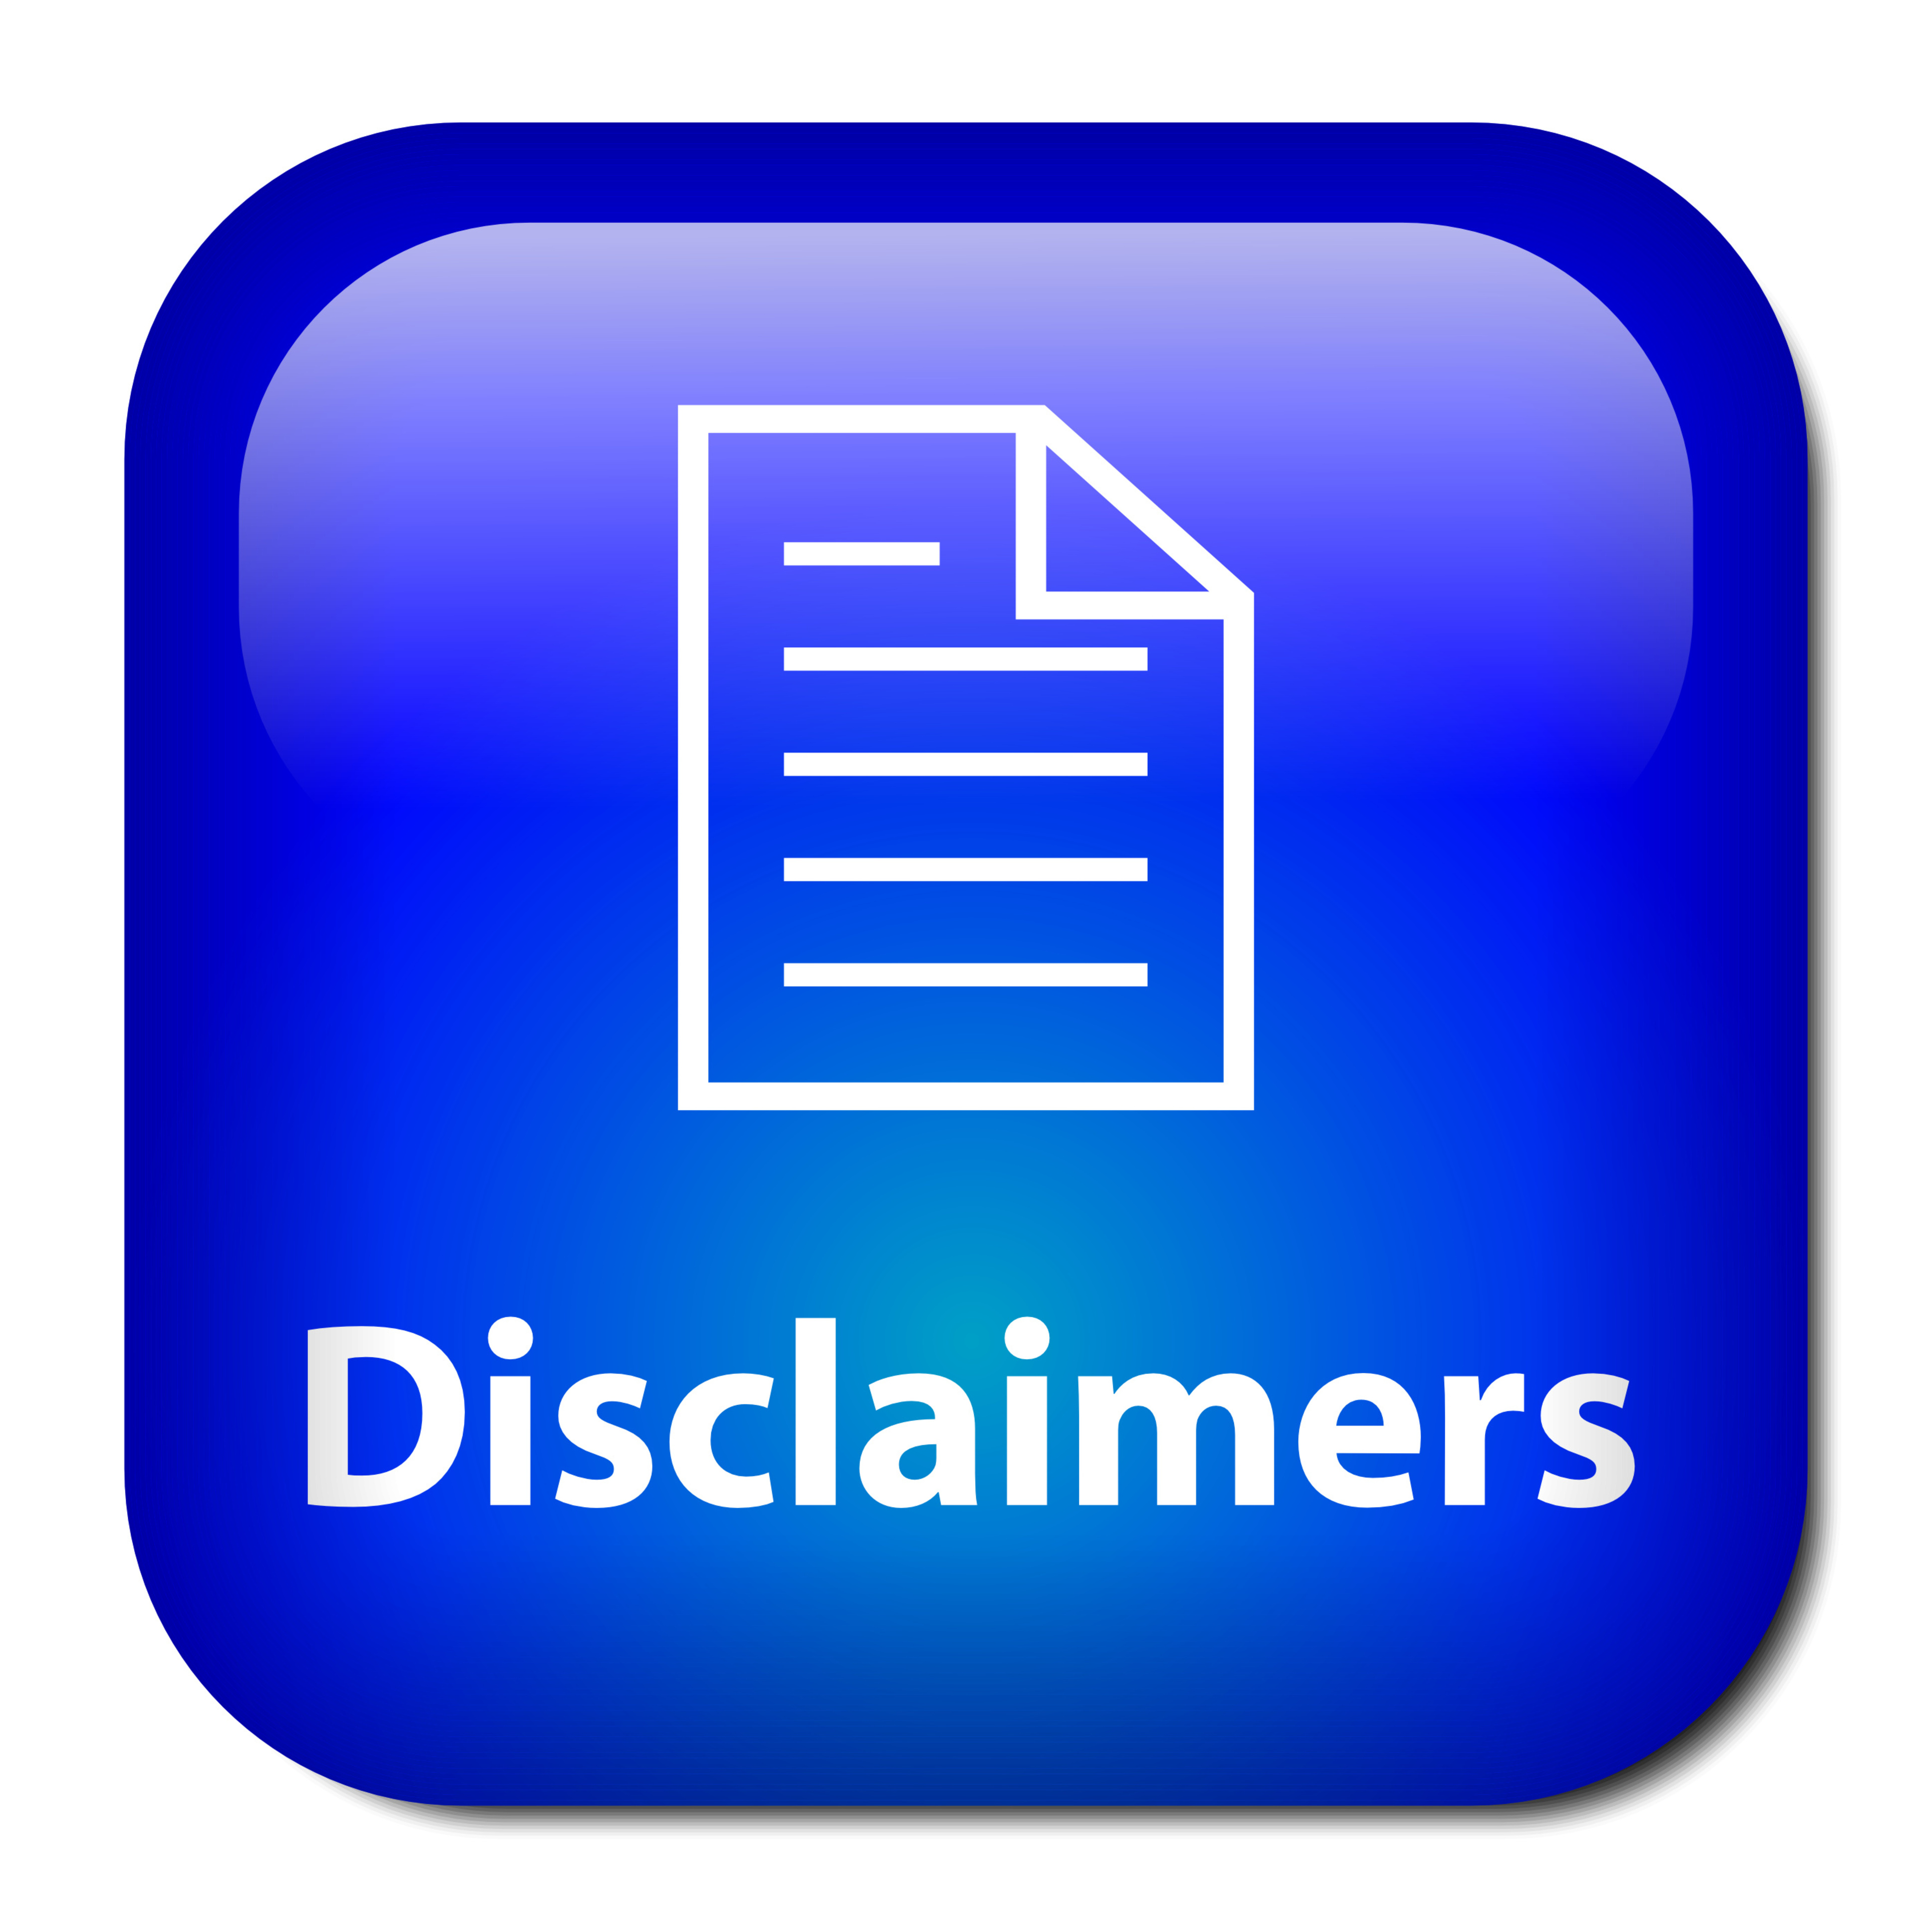 an advertiser disclaimer is a notice posted on your website informing users that your business will not be held legally liable or responsible